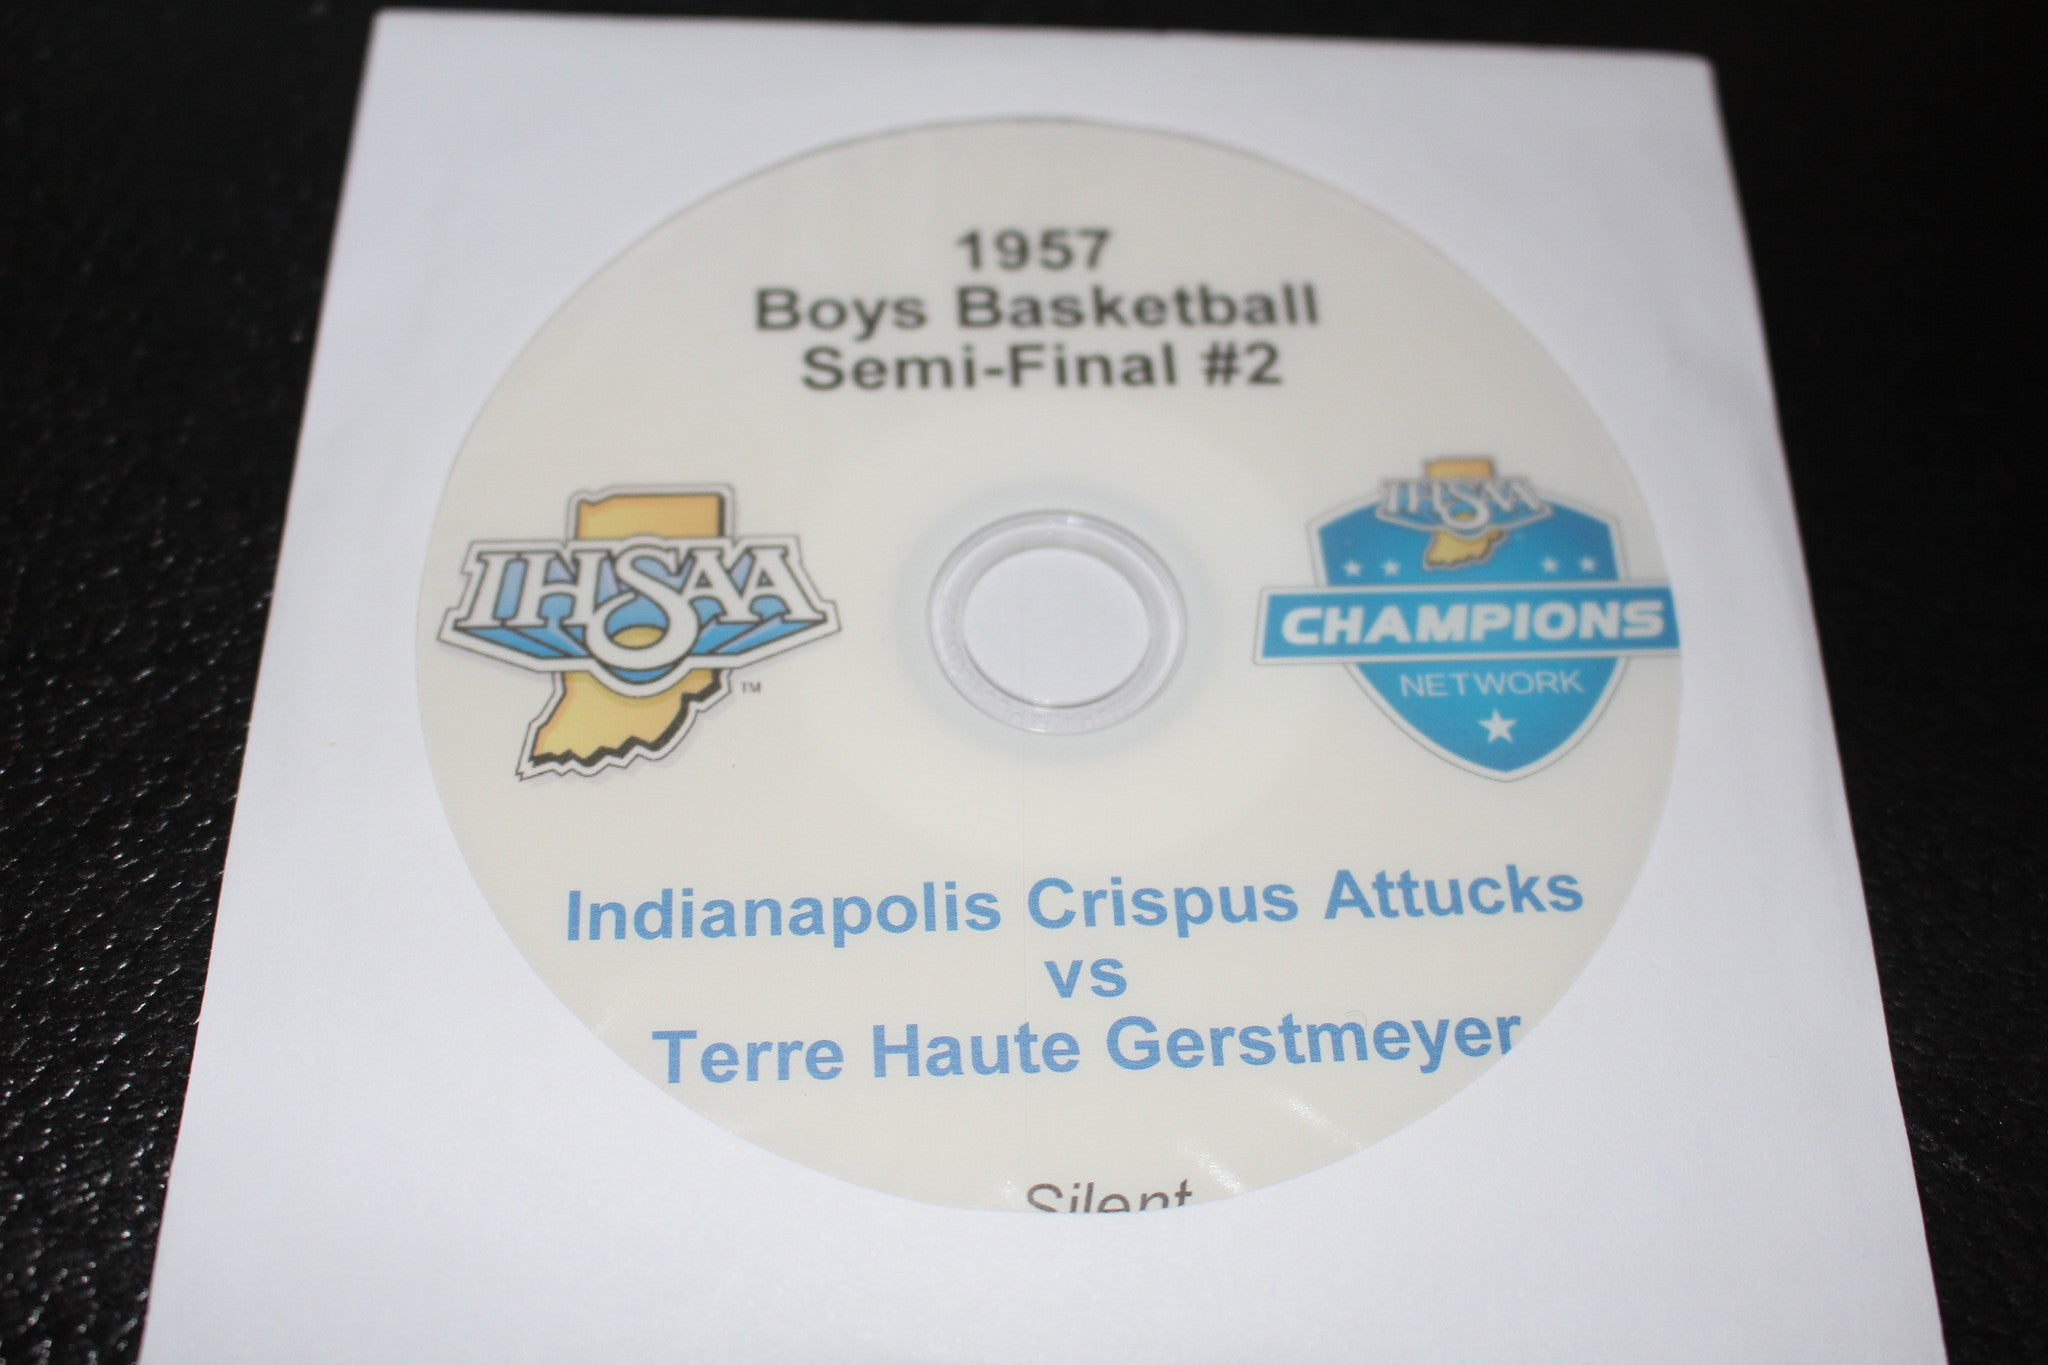 1957 Indiana High School Basketball Semi-Final #2 DVD - Vintage Indy Sports